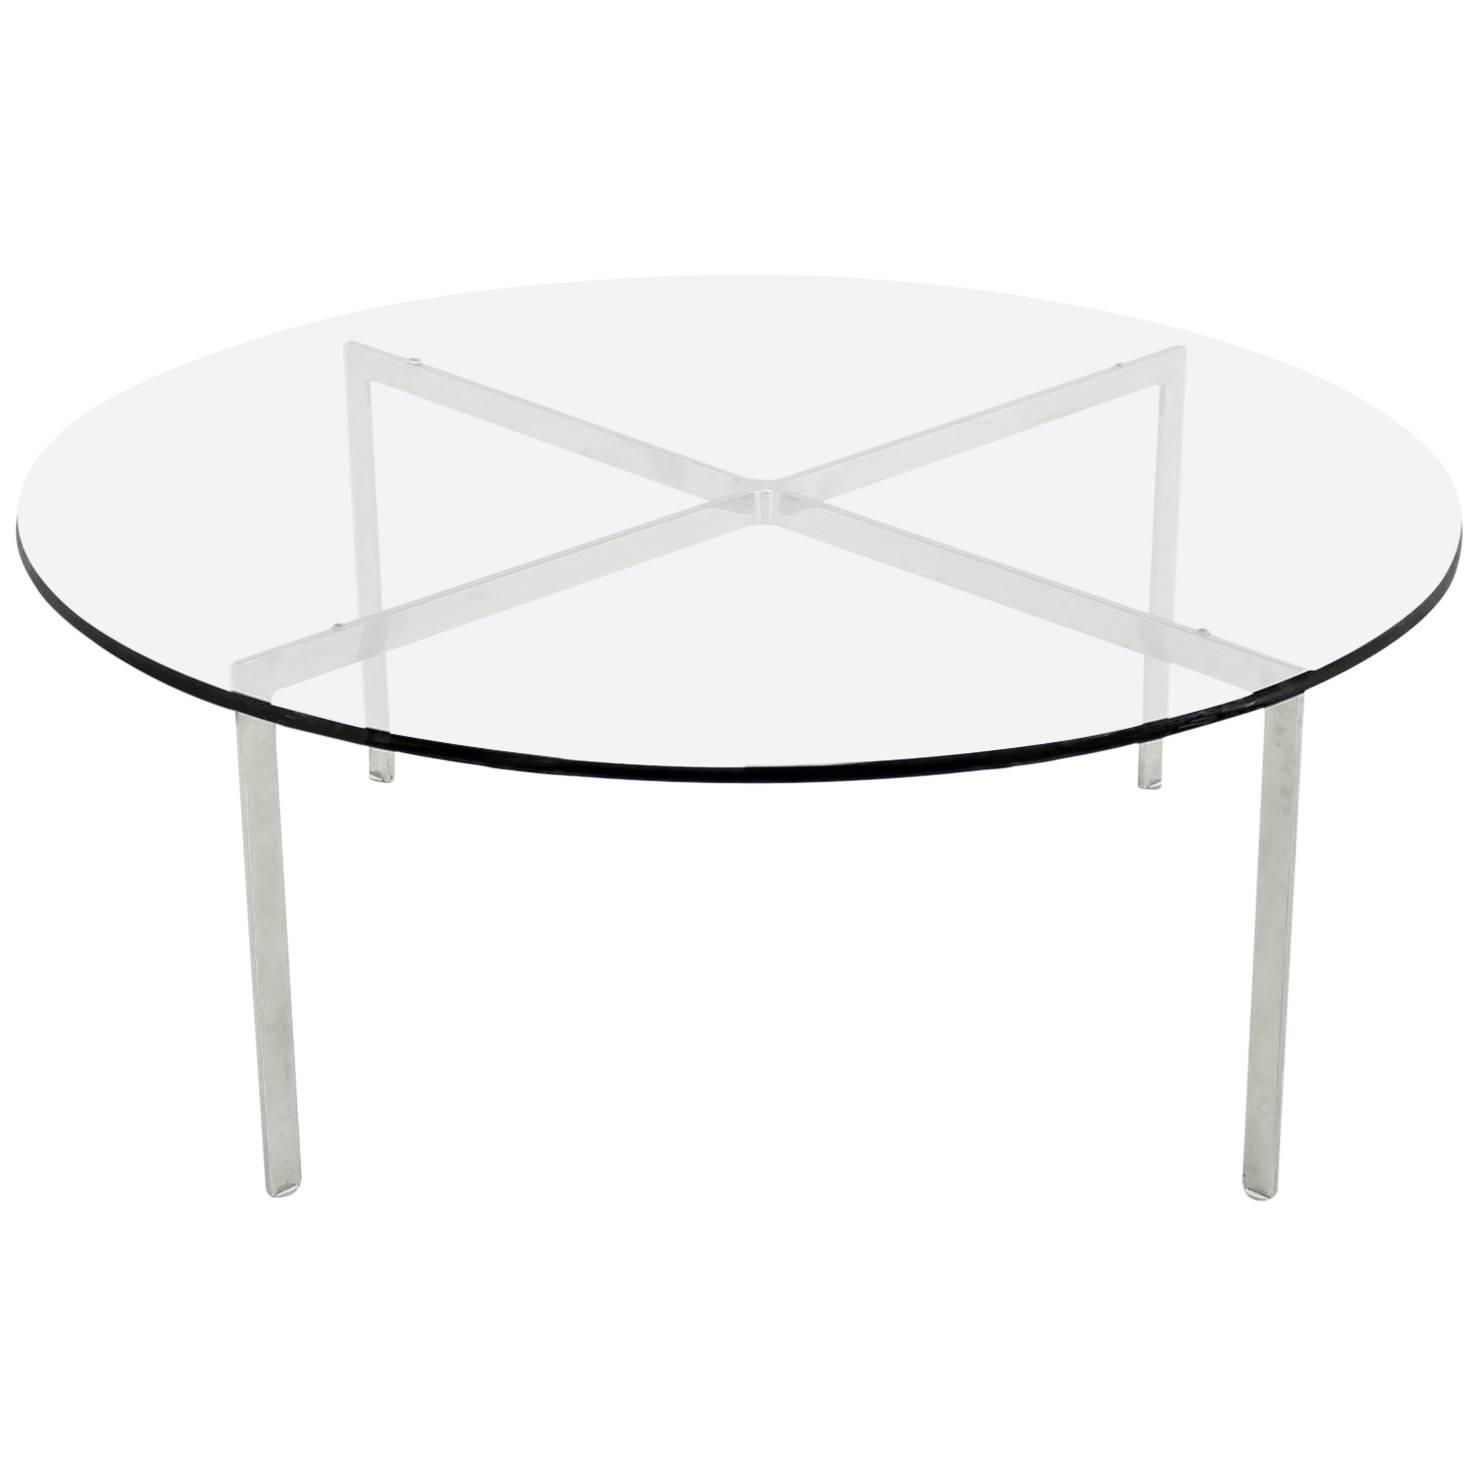 Mid century modern chrome base and glass top coffee table for sale at 1stdibs Glass coffee table base